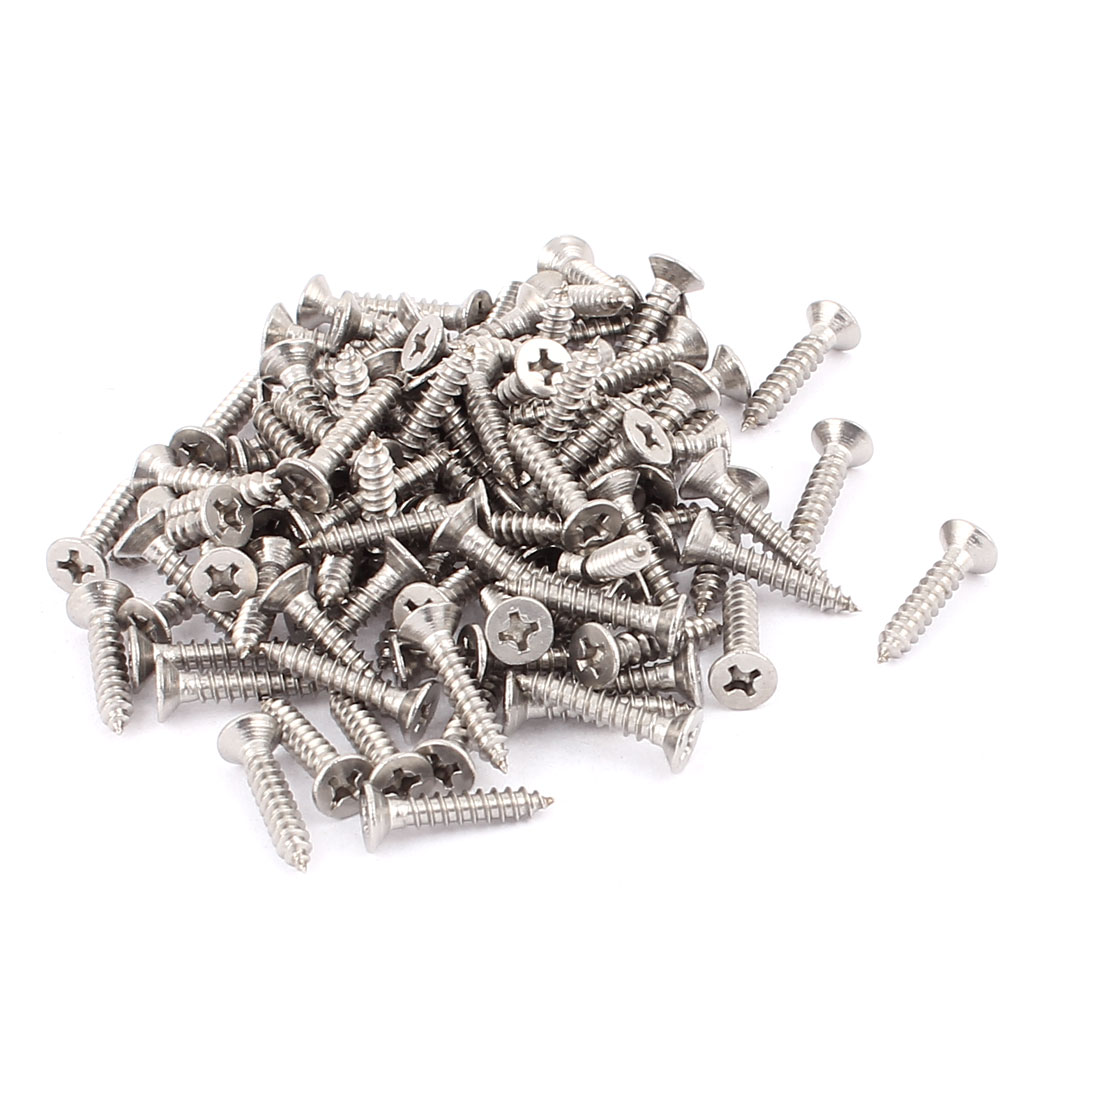 3.5mm x 19mm Countersunk Cross Head Self Tapping Screw Fasteners 100 Pcs